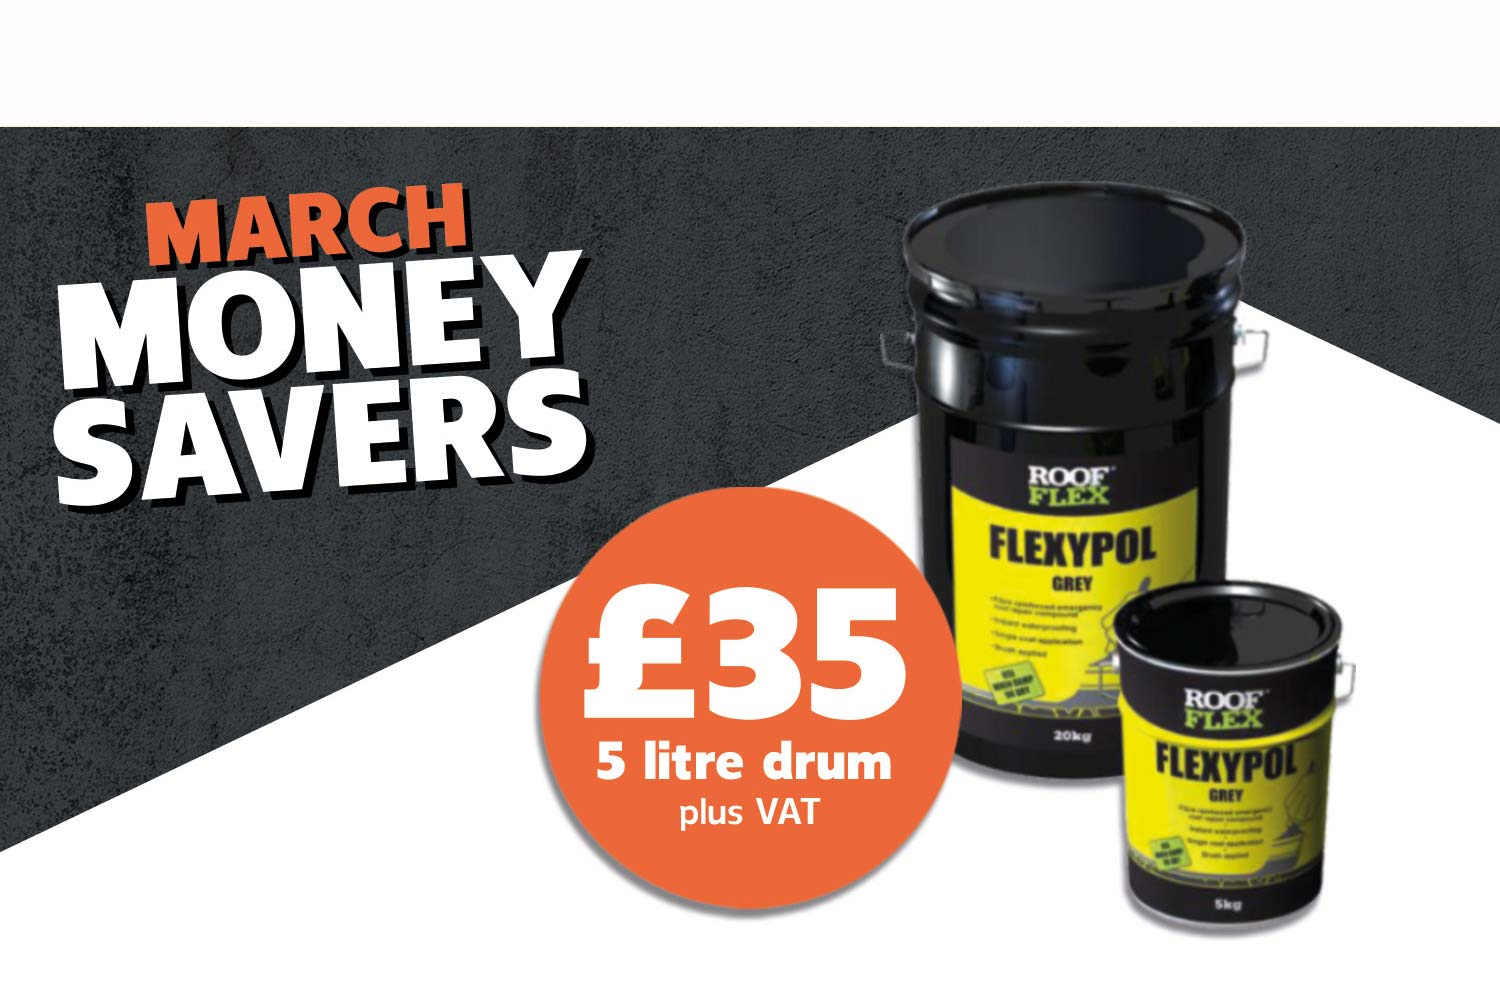 FLEXYPOL 5L DRUM ONLY £35 + VAT